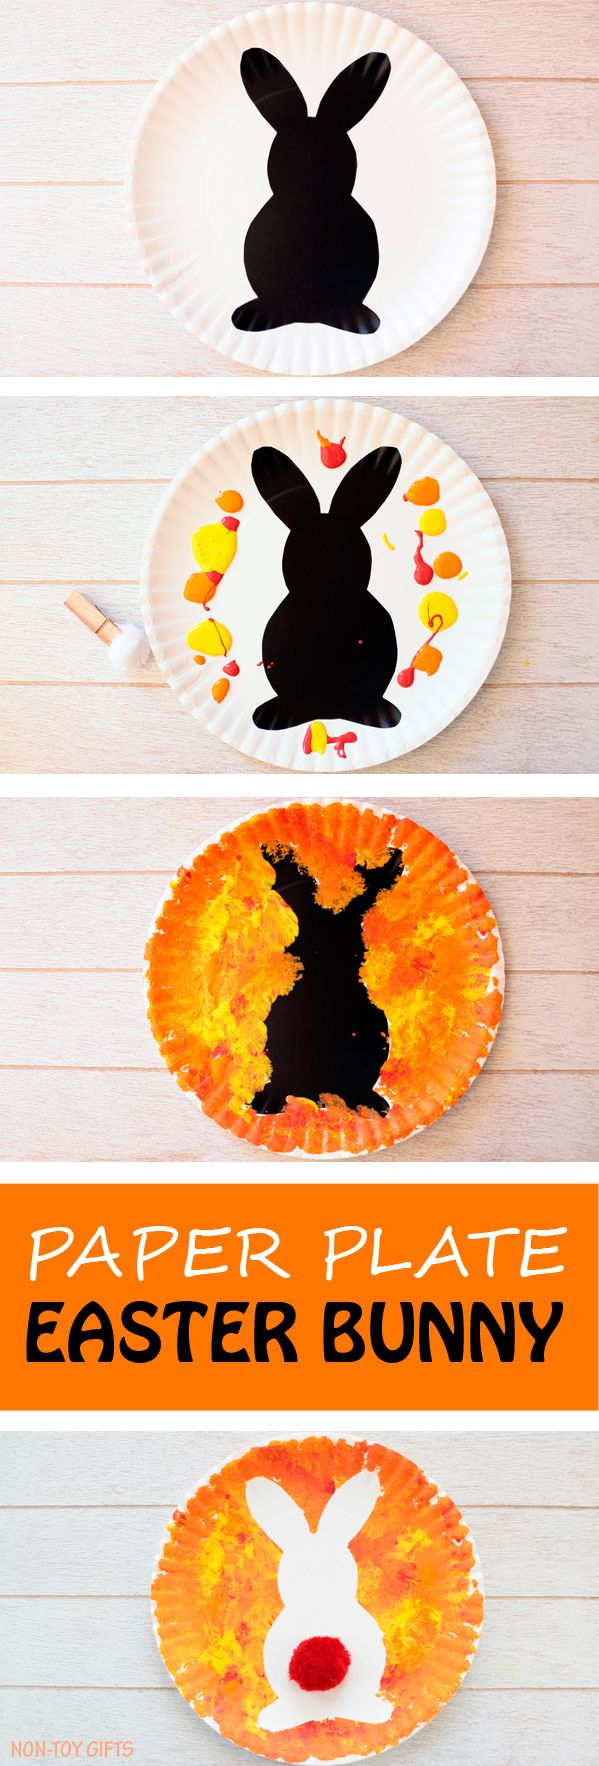 Paper Plate Easter Bunny Craft For Kids Use Different Shape Templates Easy Art Project Toddlers Preschoolers Kindergartners And Older